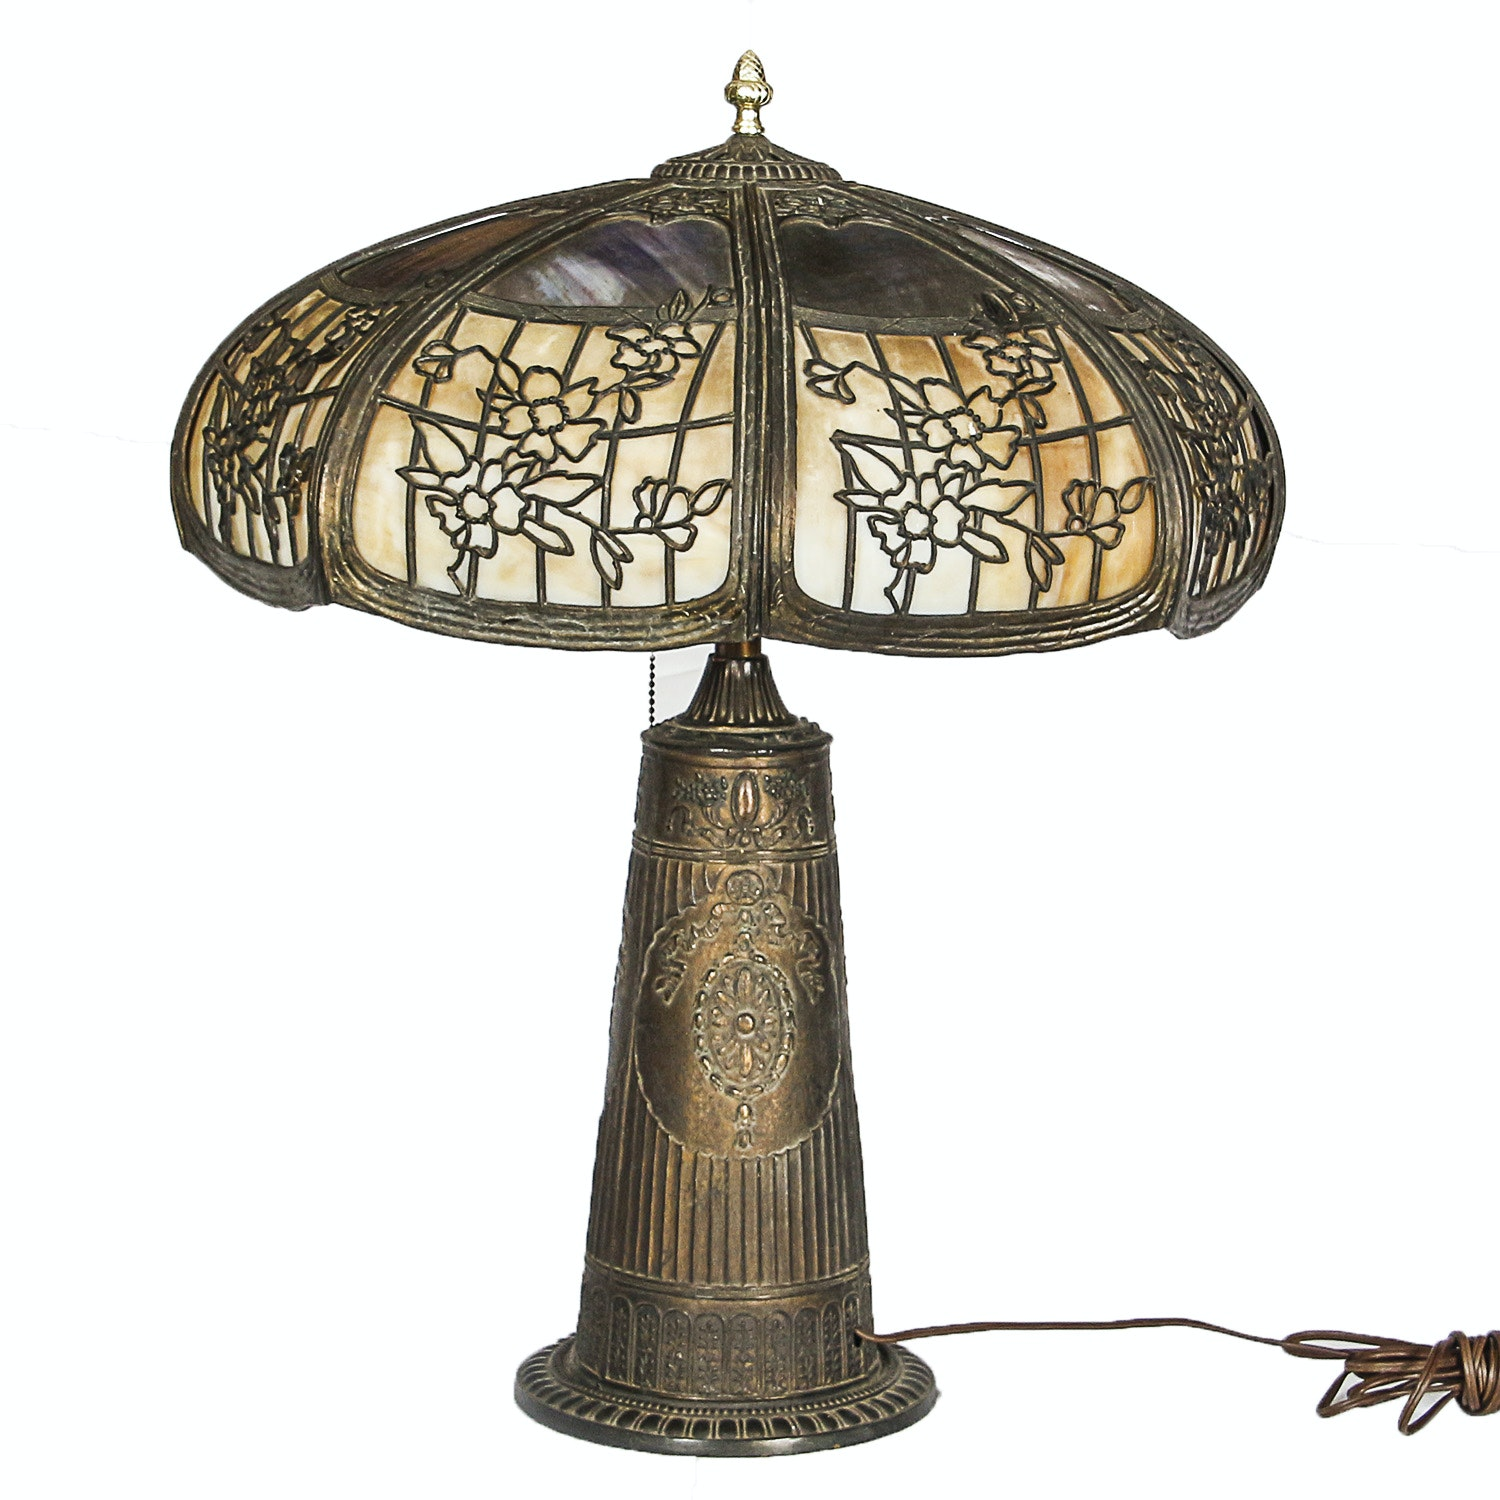 Early 20th Century B & H Style Art Nouveau Slag Glass and Metal Table Lamp